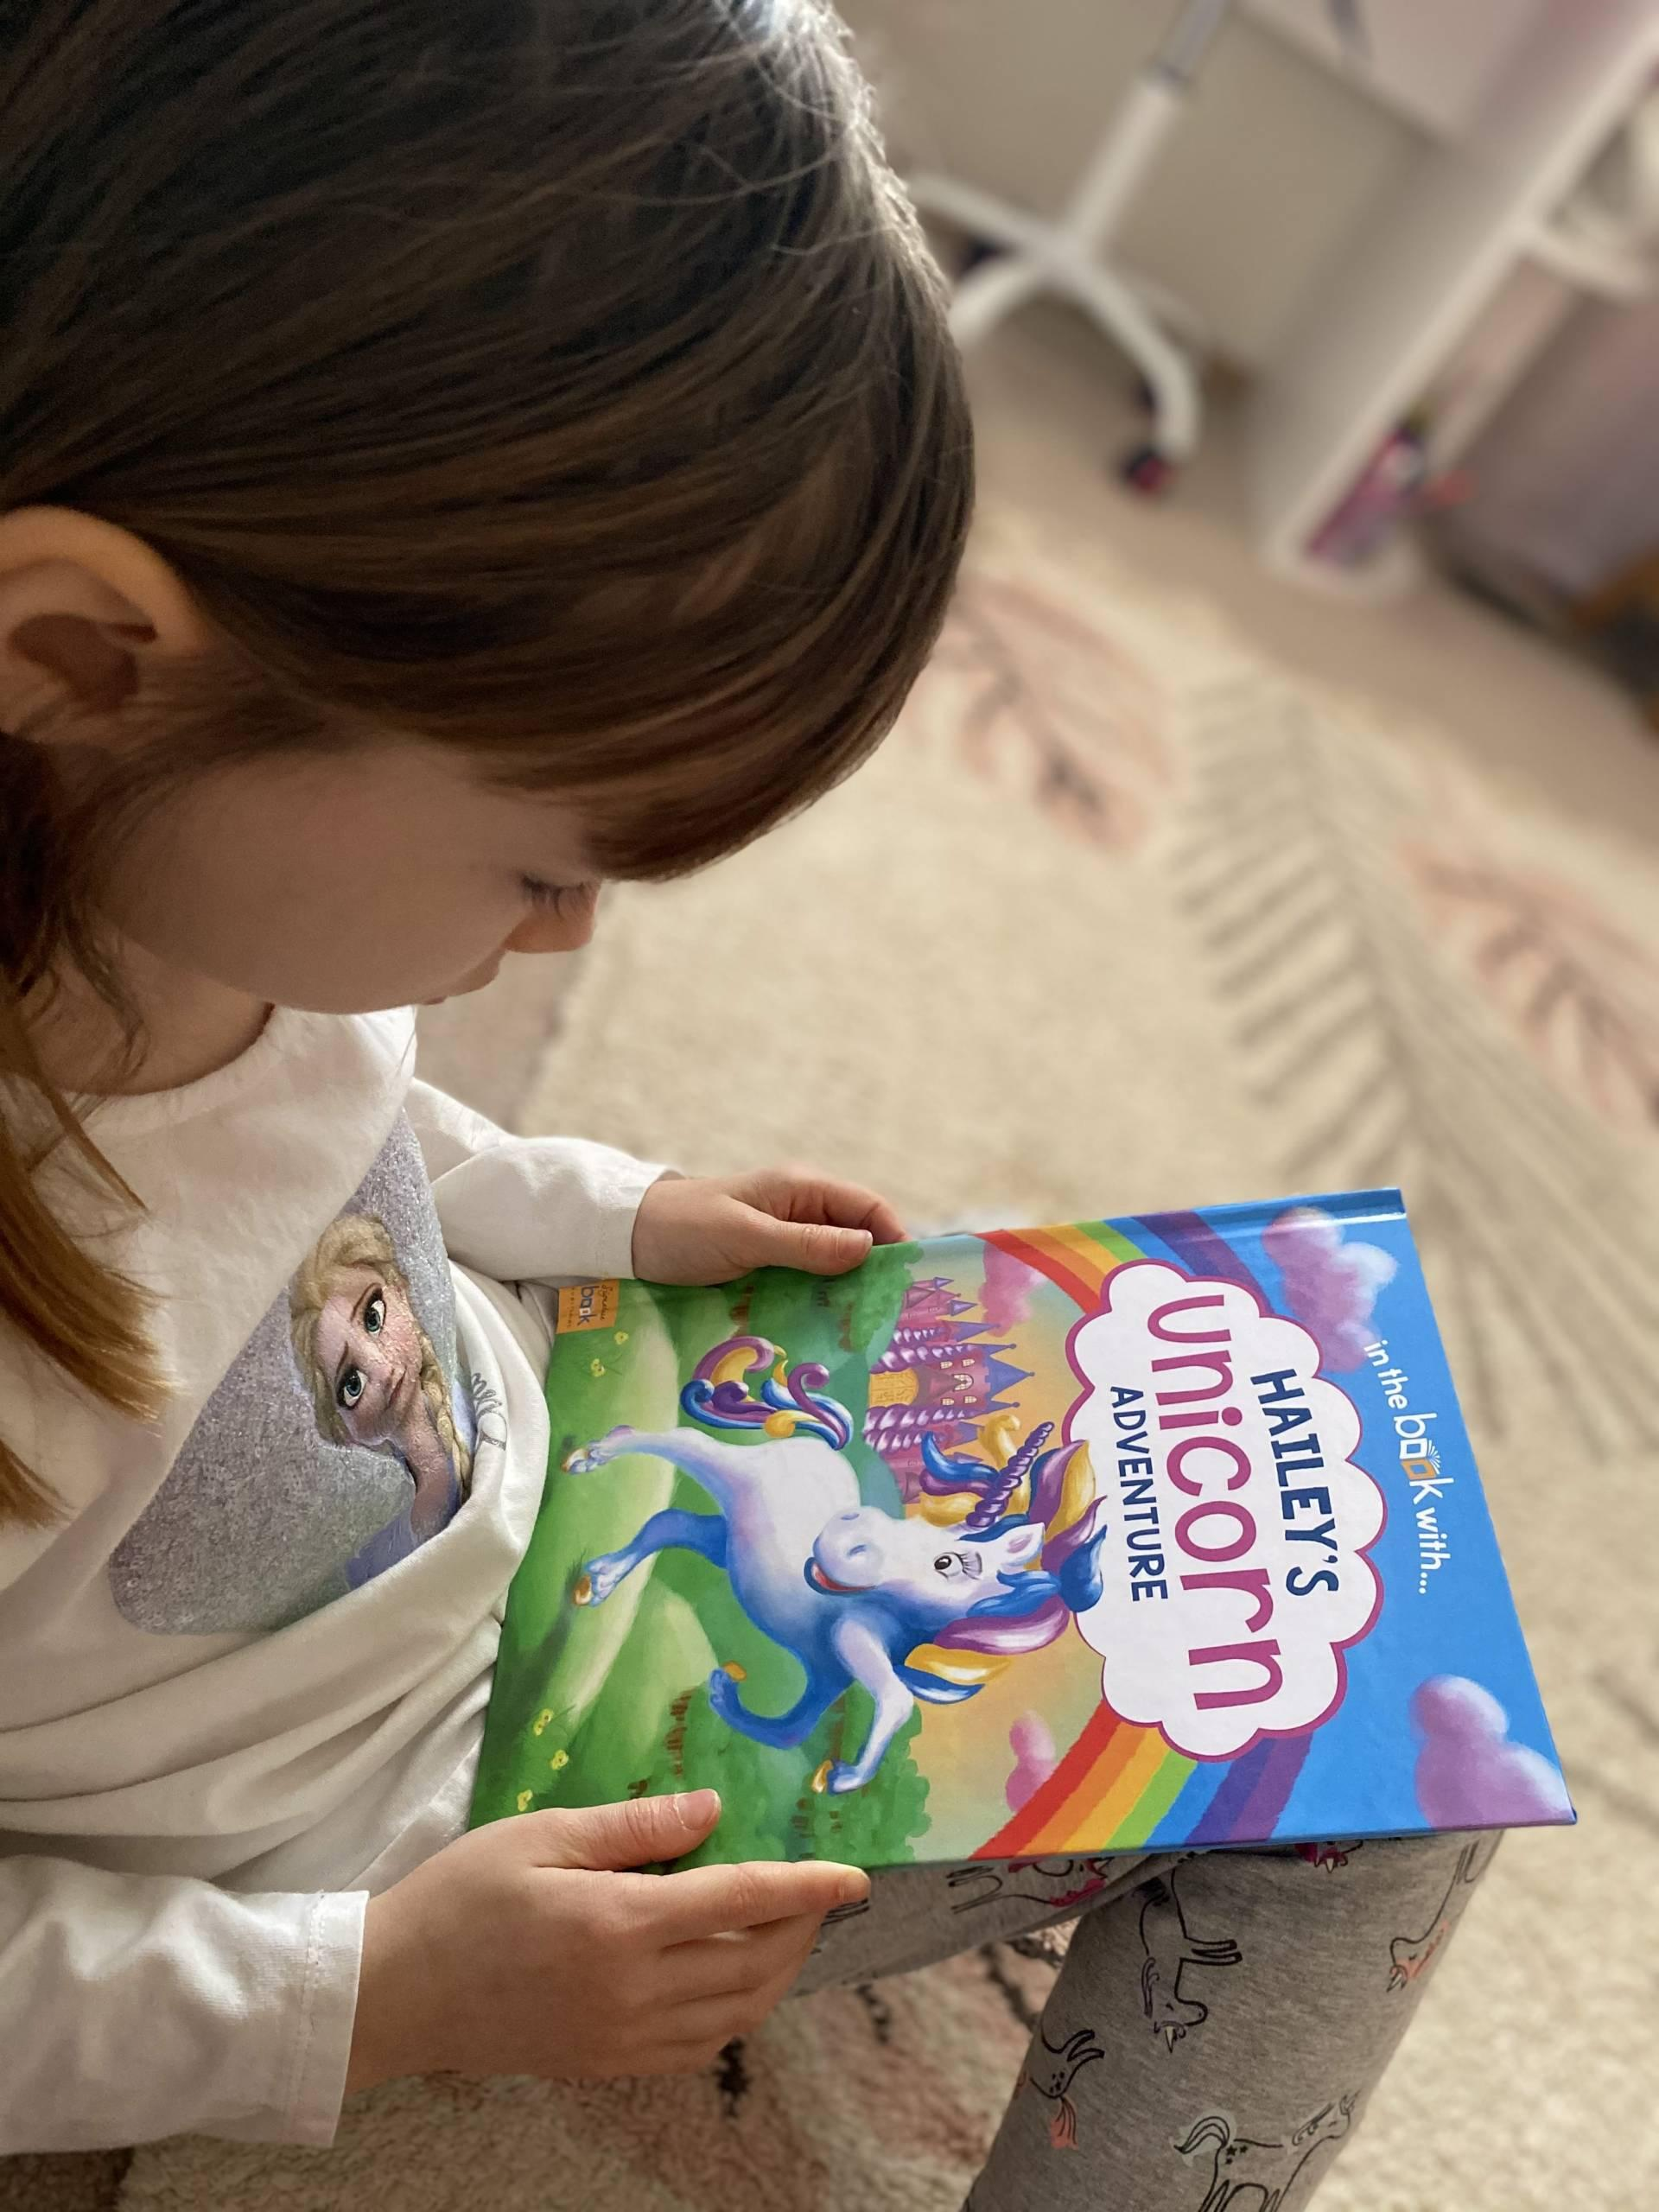 personalized books for your home library